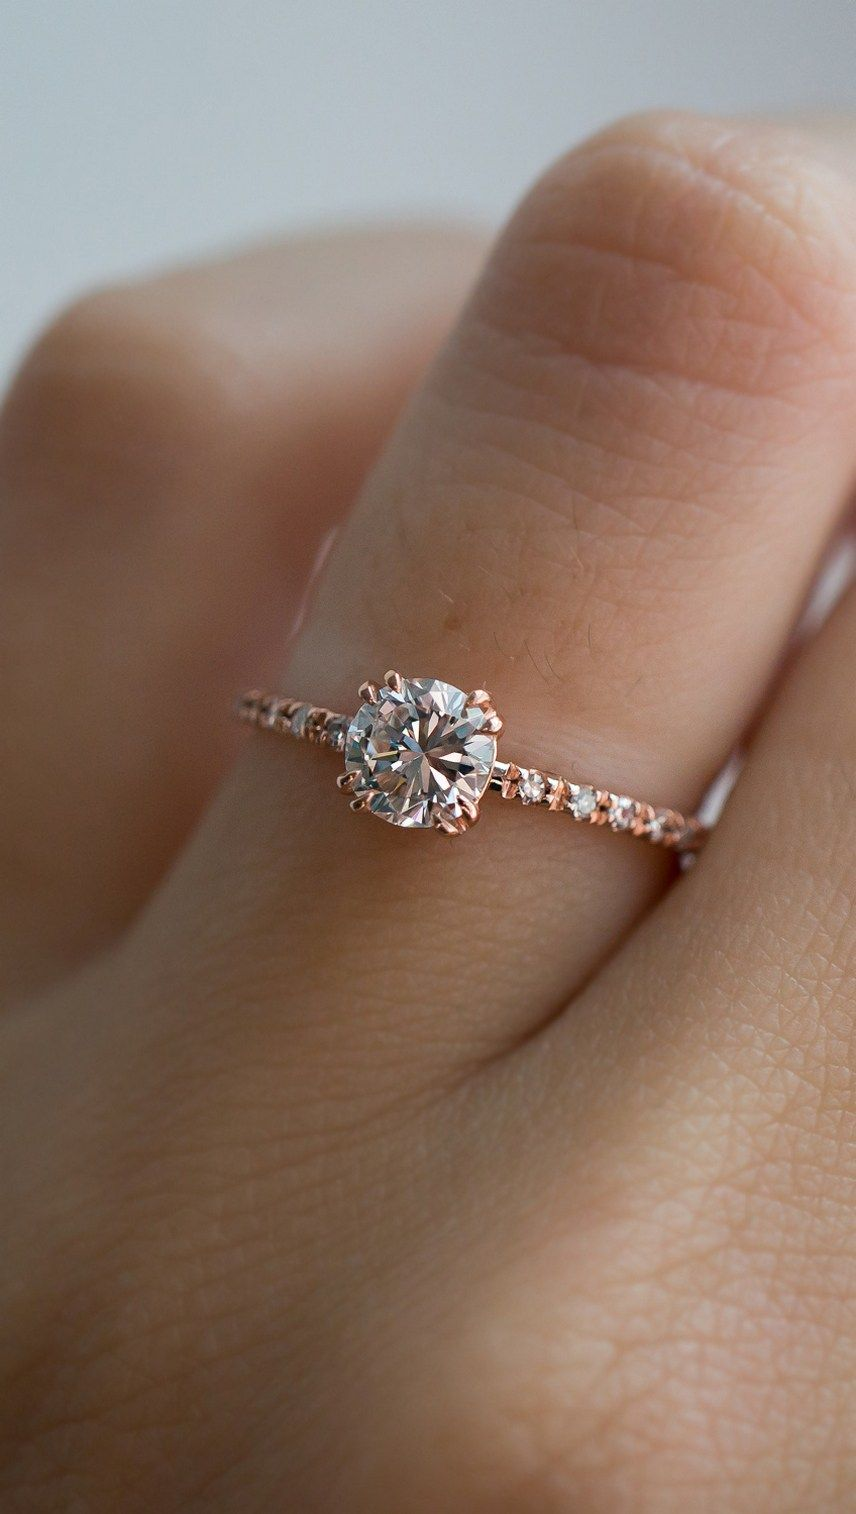 100 Simple Vintage Engagement Rings Inspiration (75) | Engagement ...